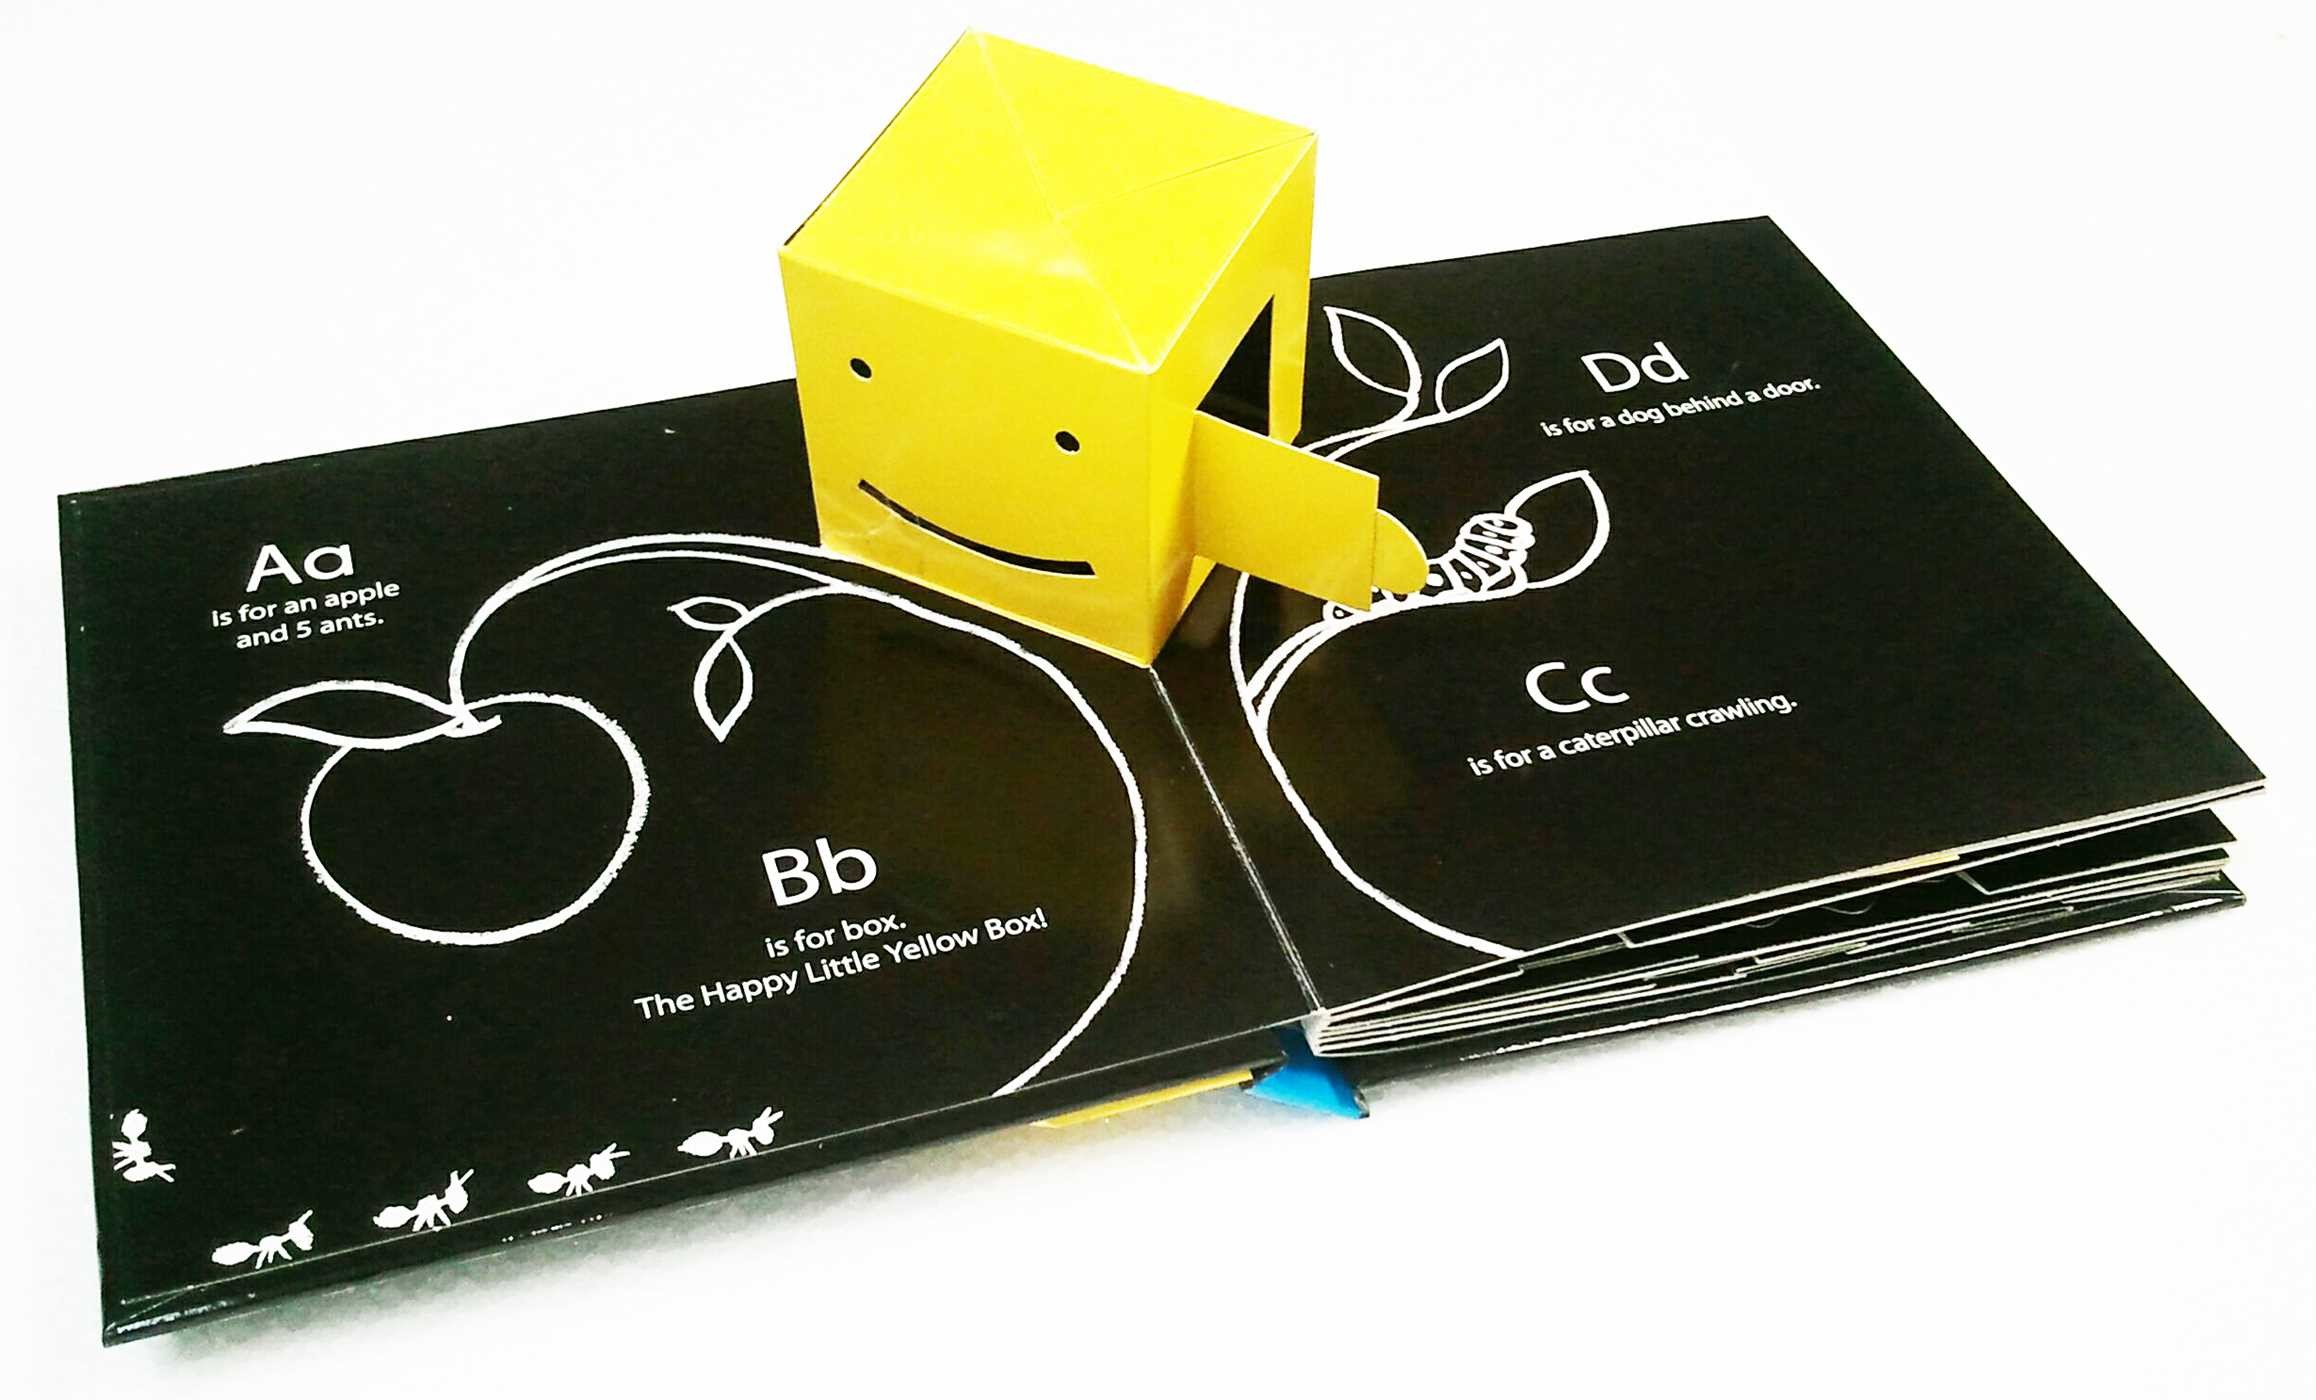 B is for box the happy little yellow box 9781481402958.in01